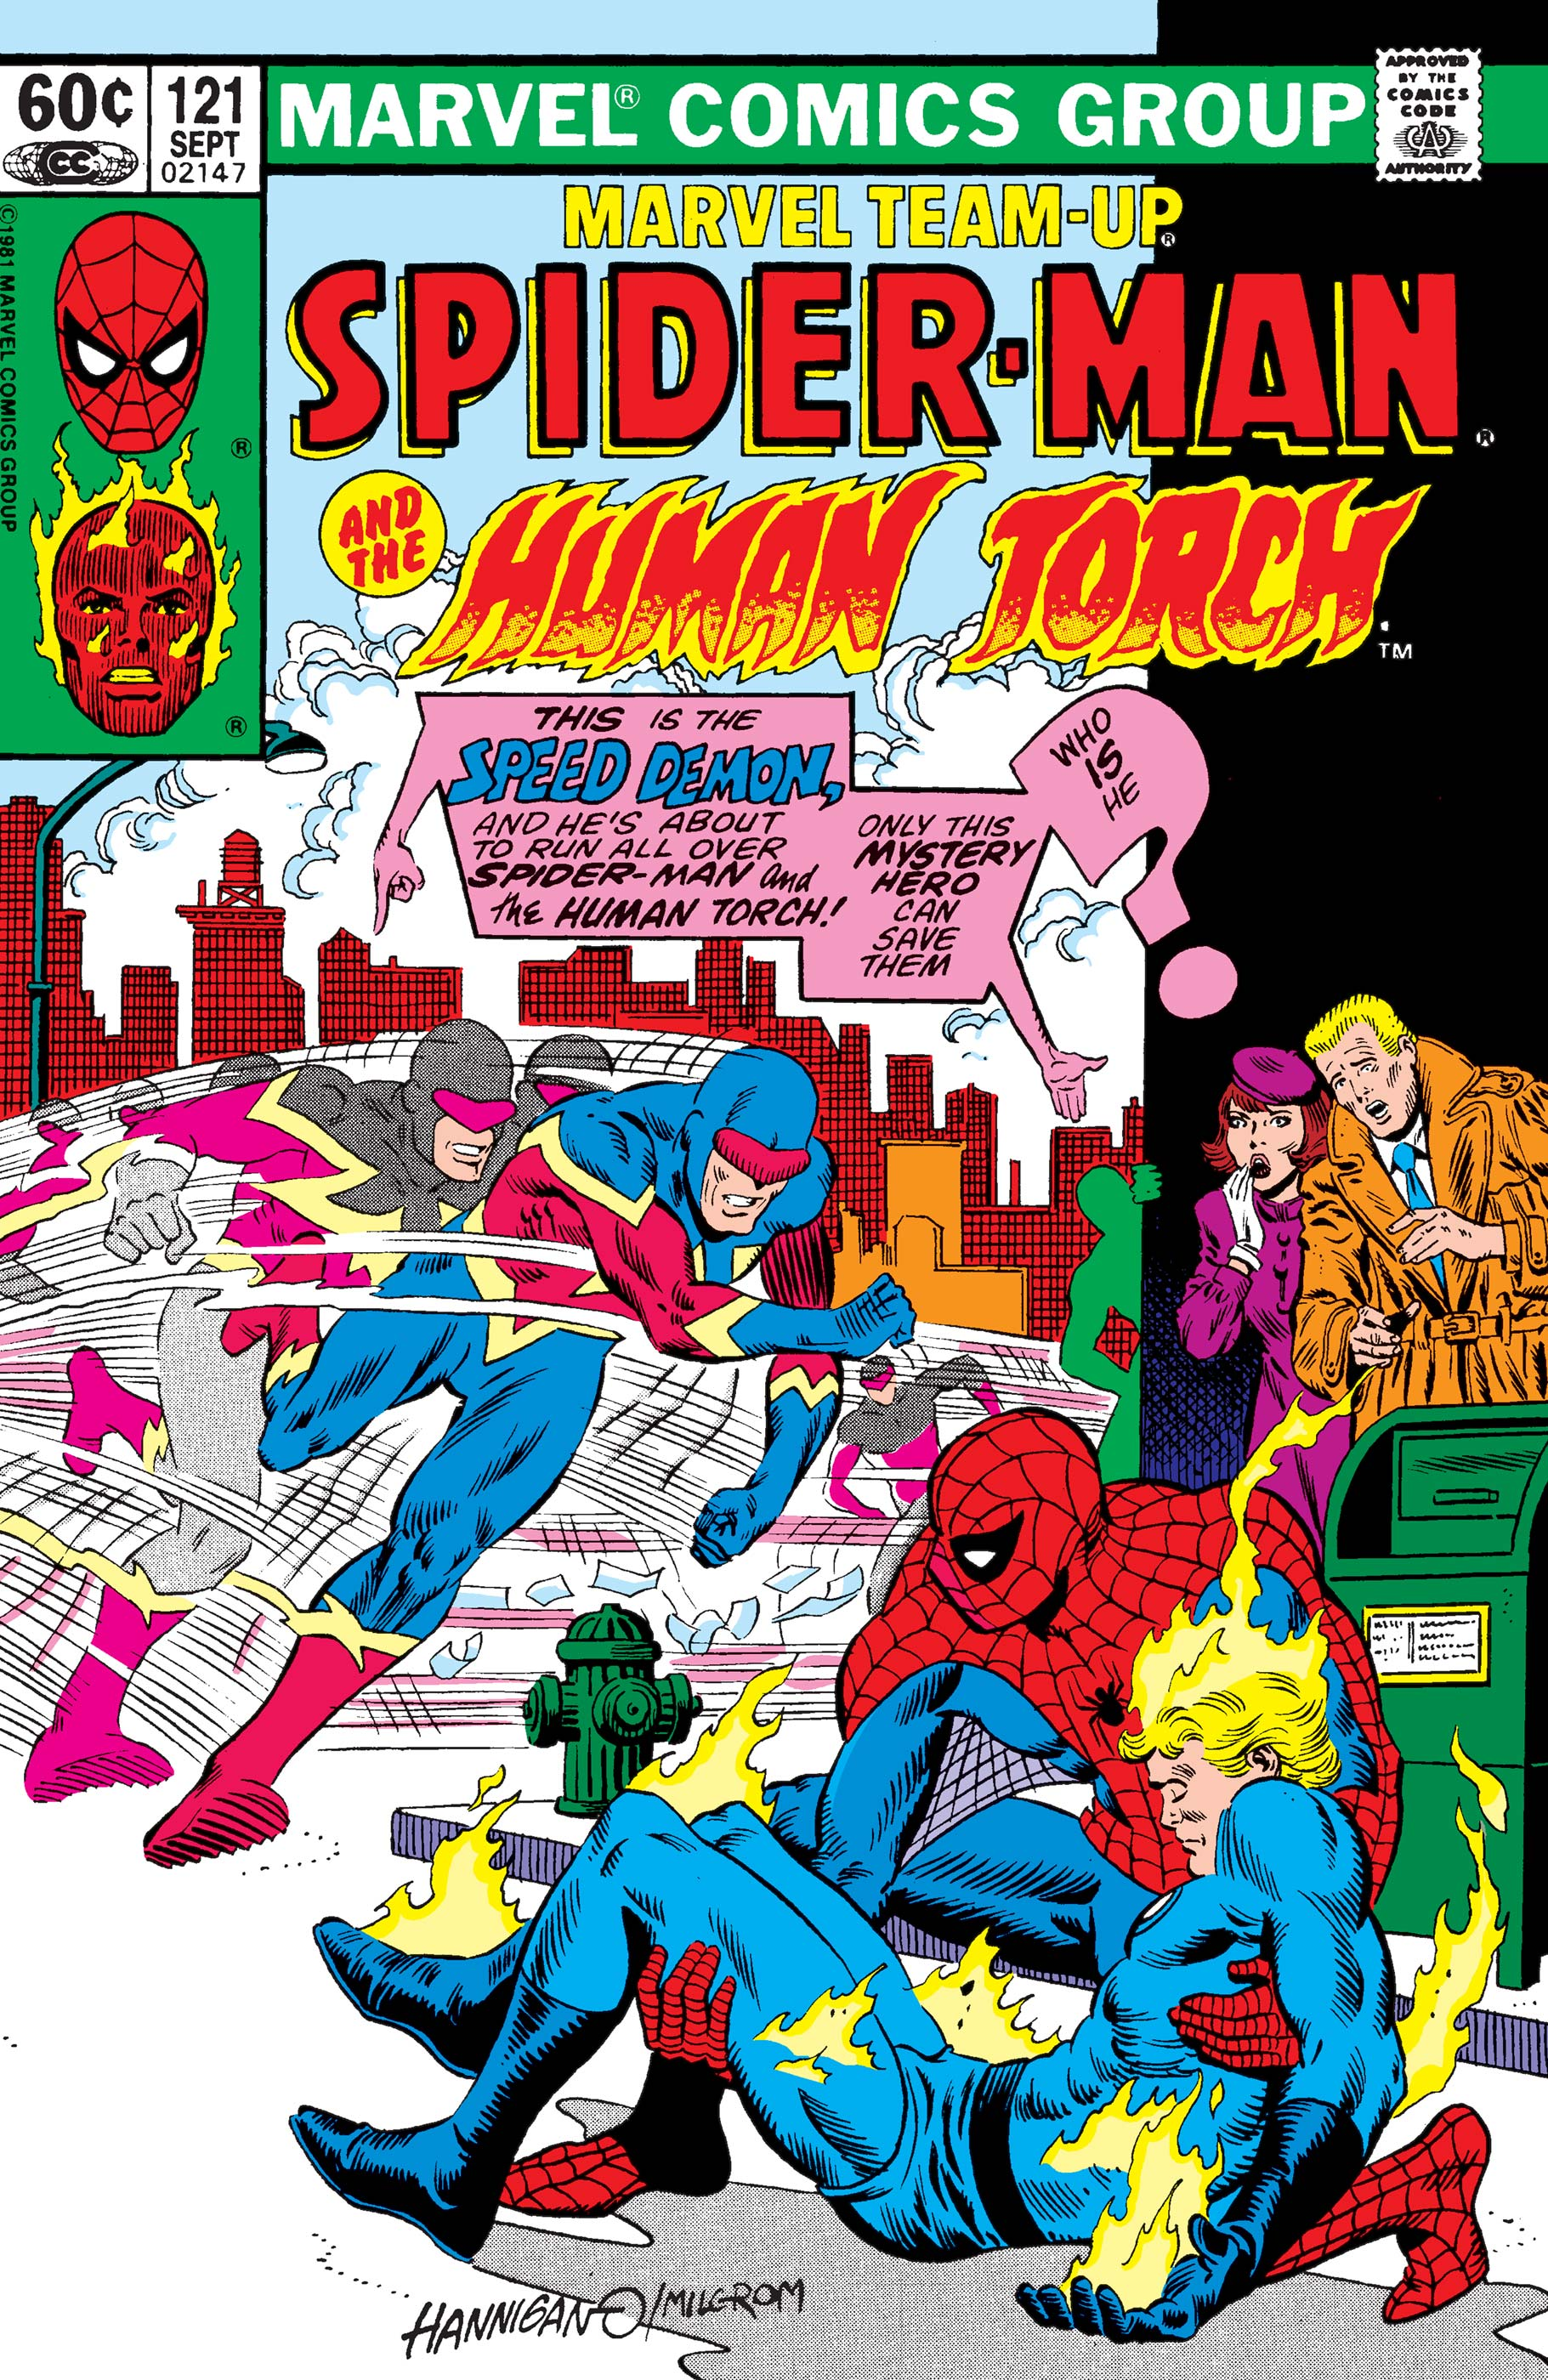 Marvel Team-Up Vol 1 121